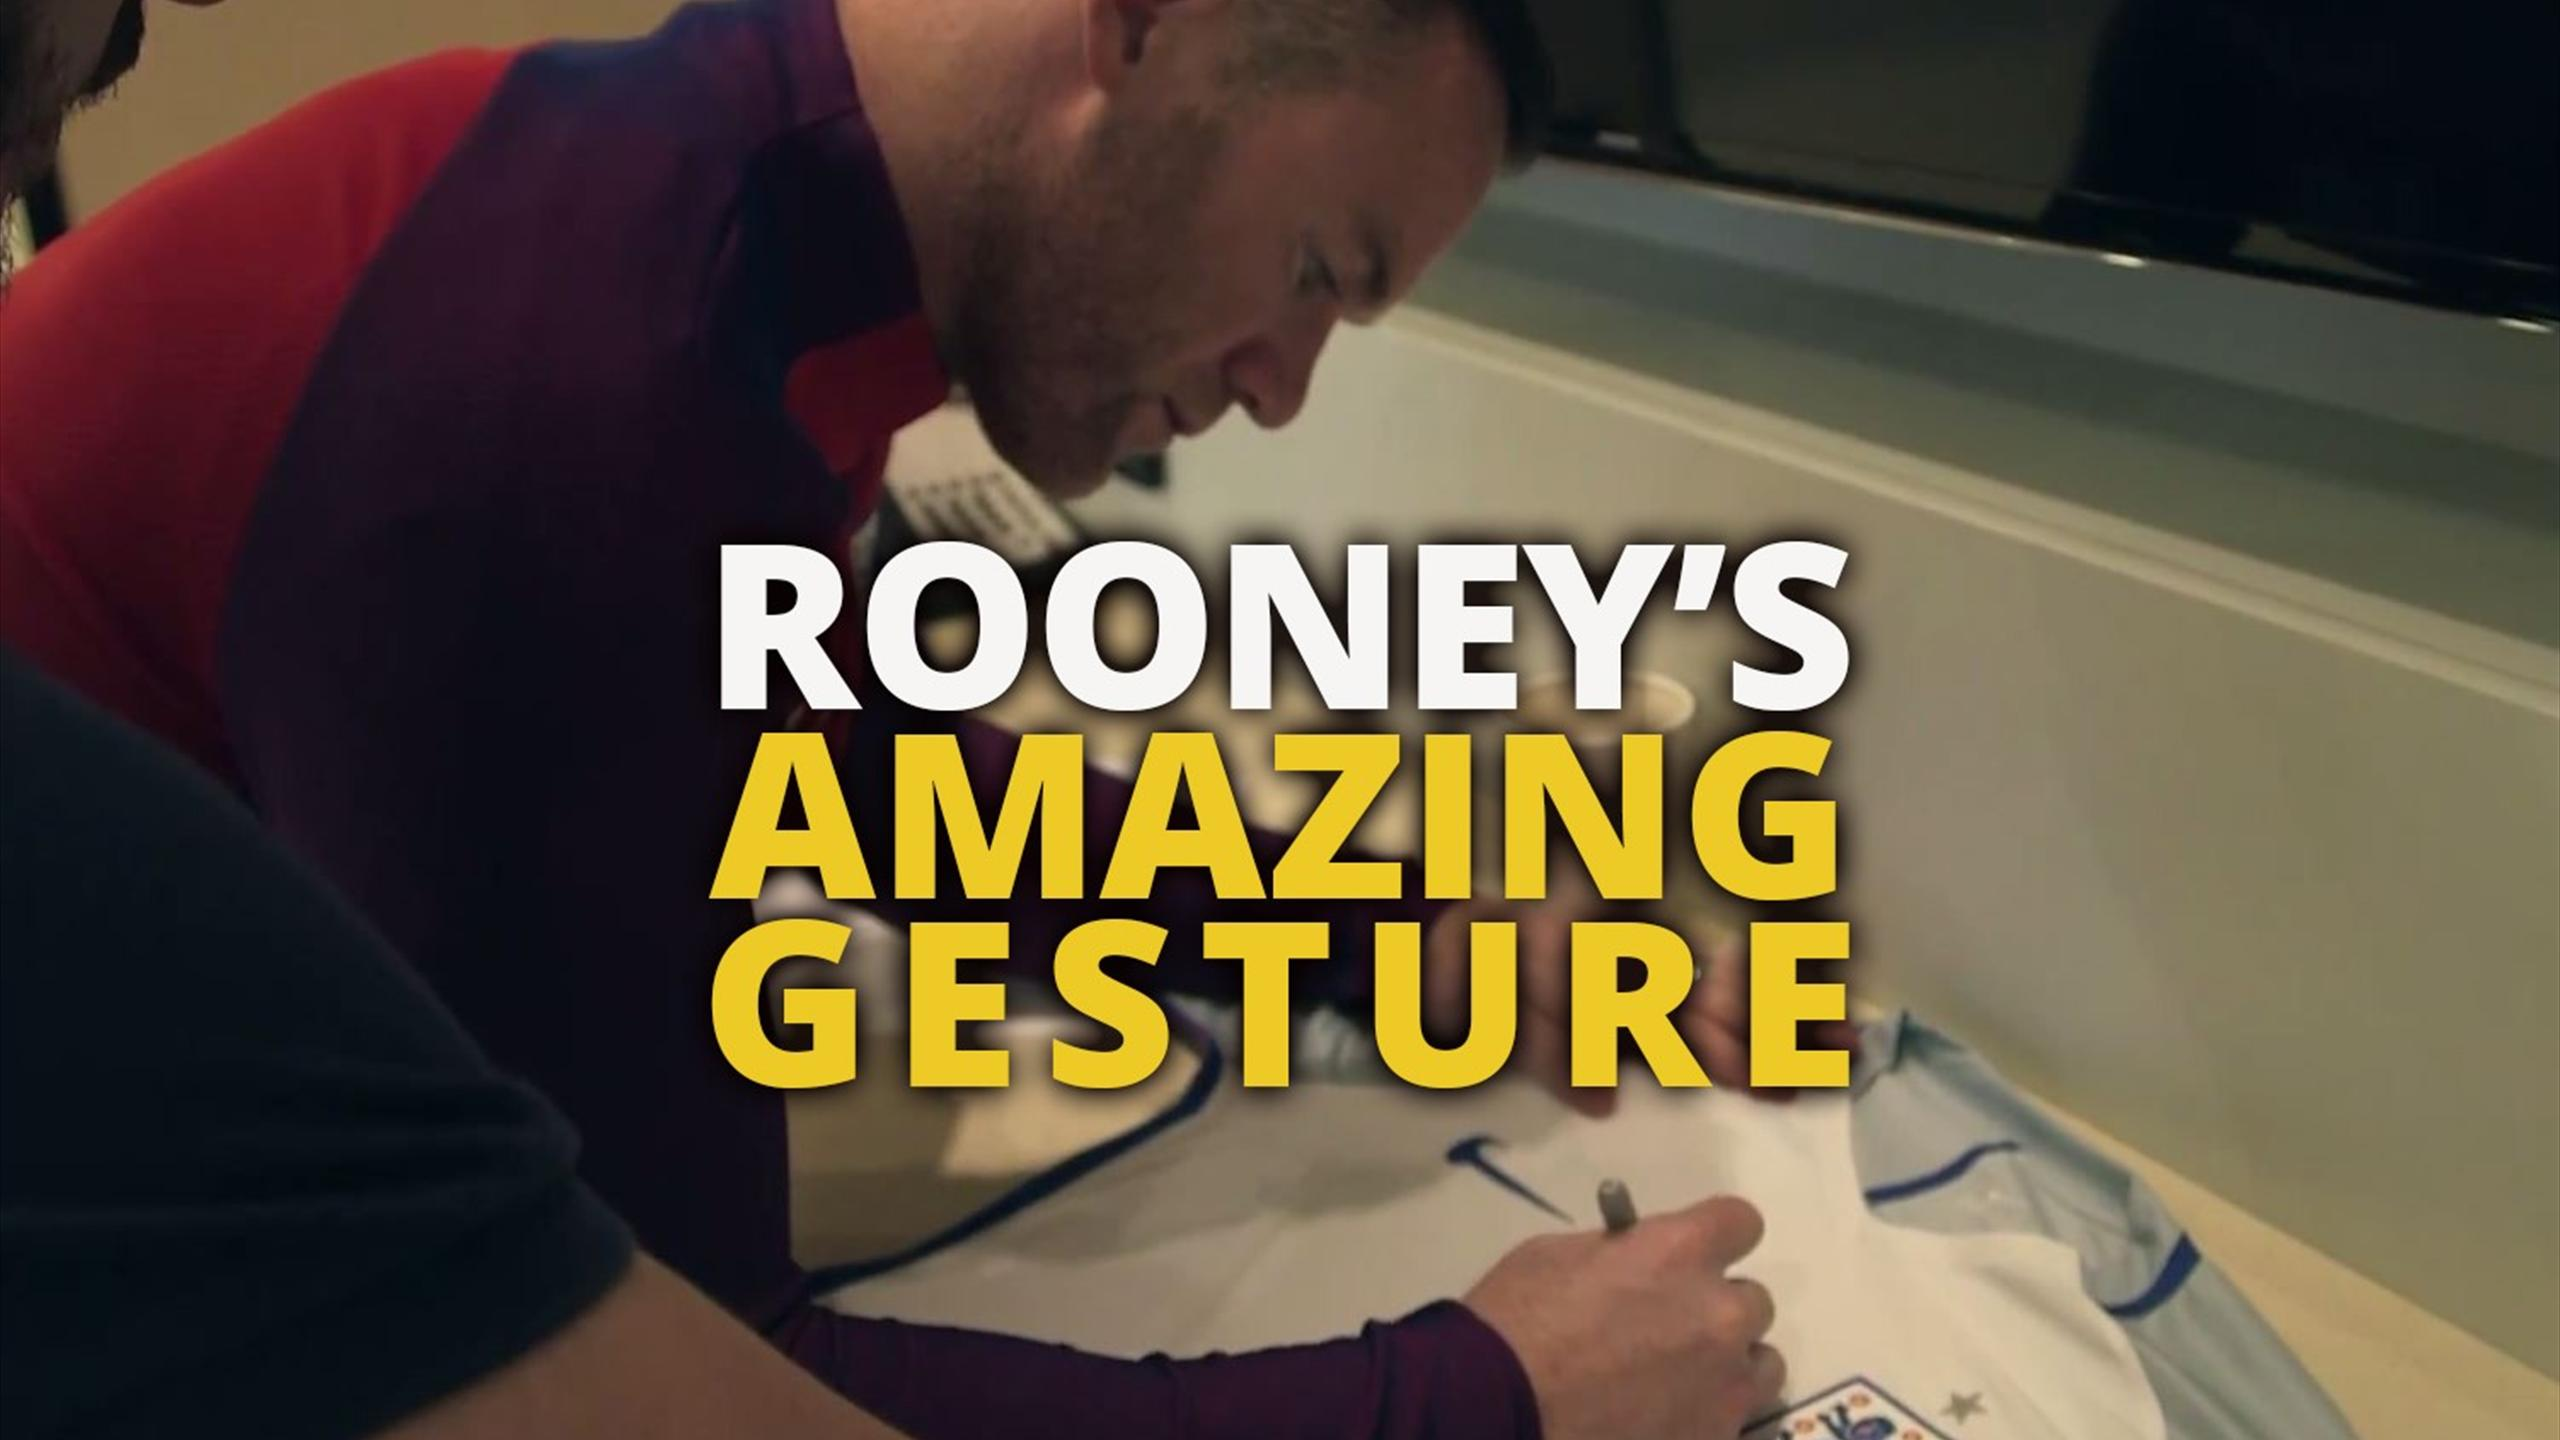 Wayne Rooney makes promise to a terminally ill fan